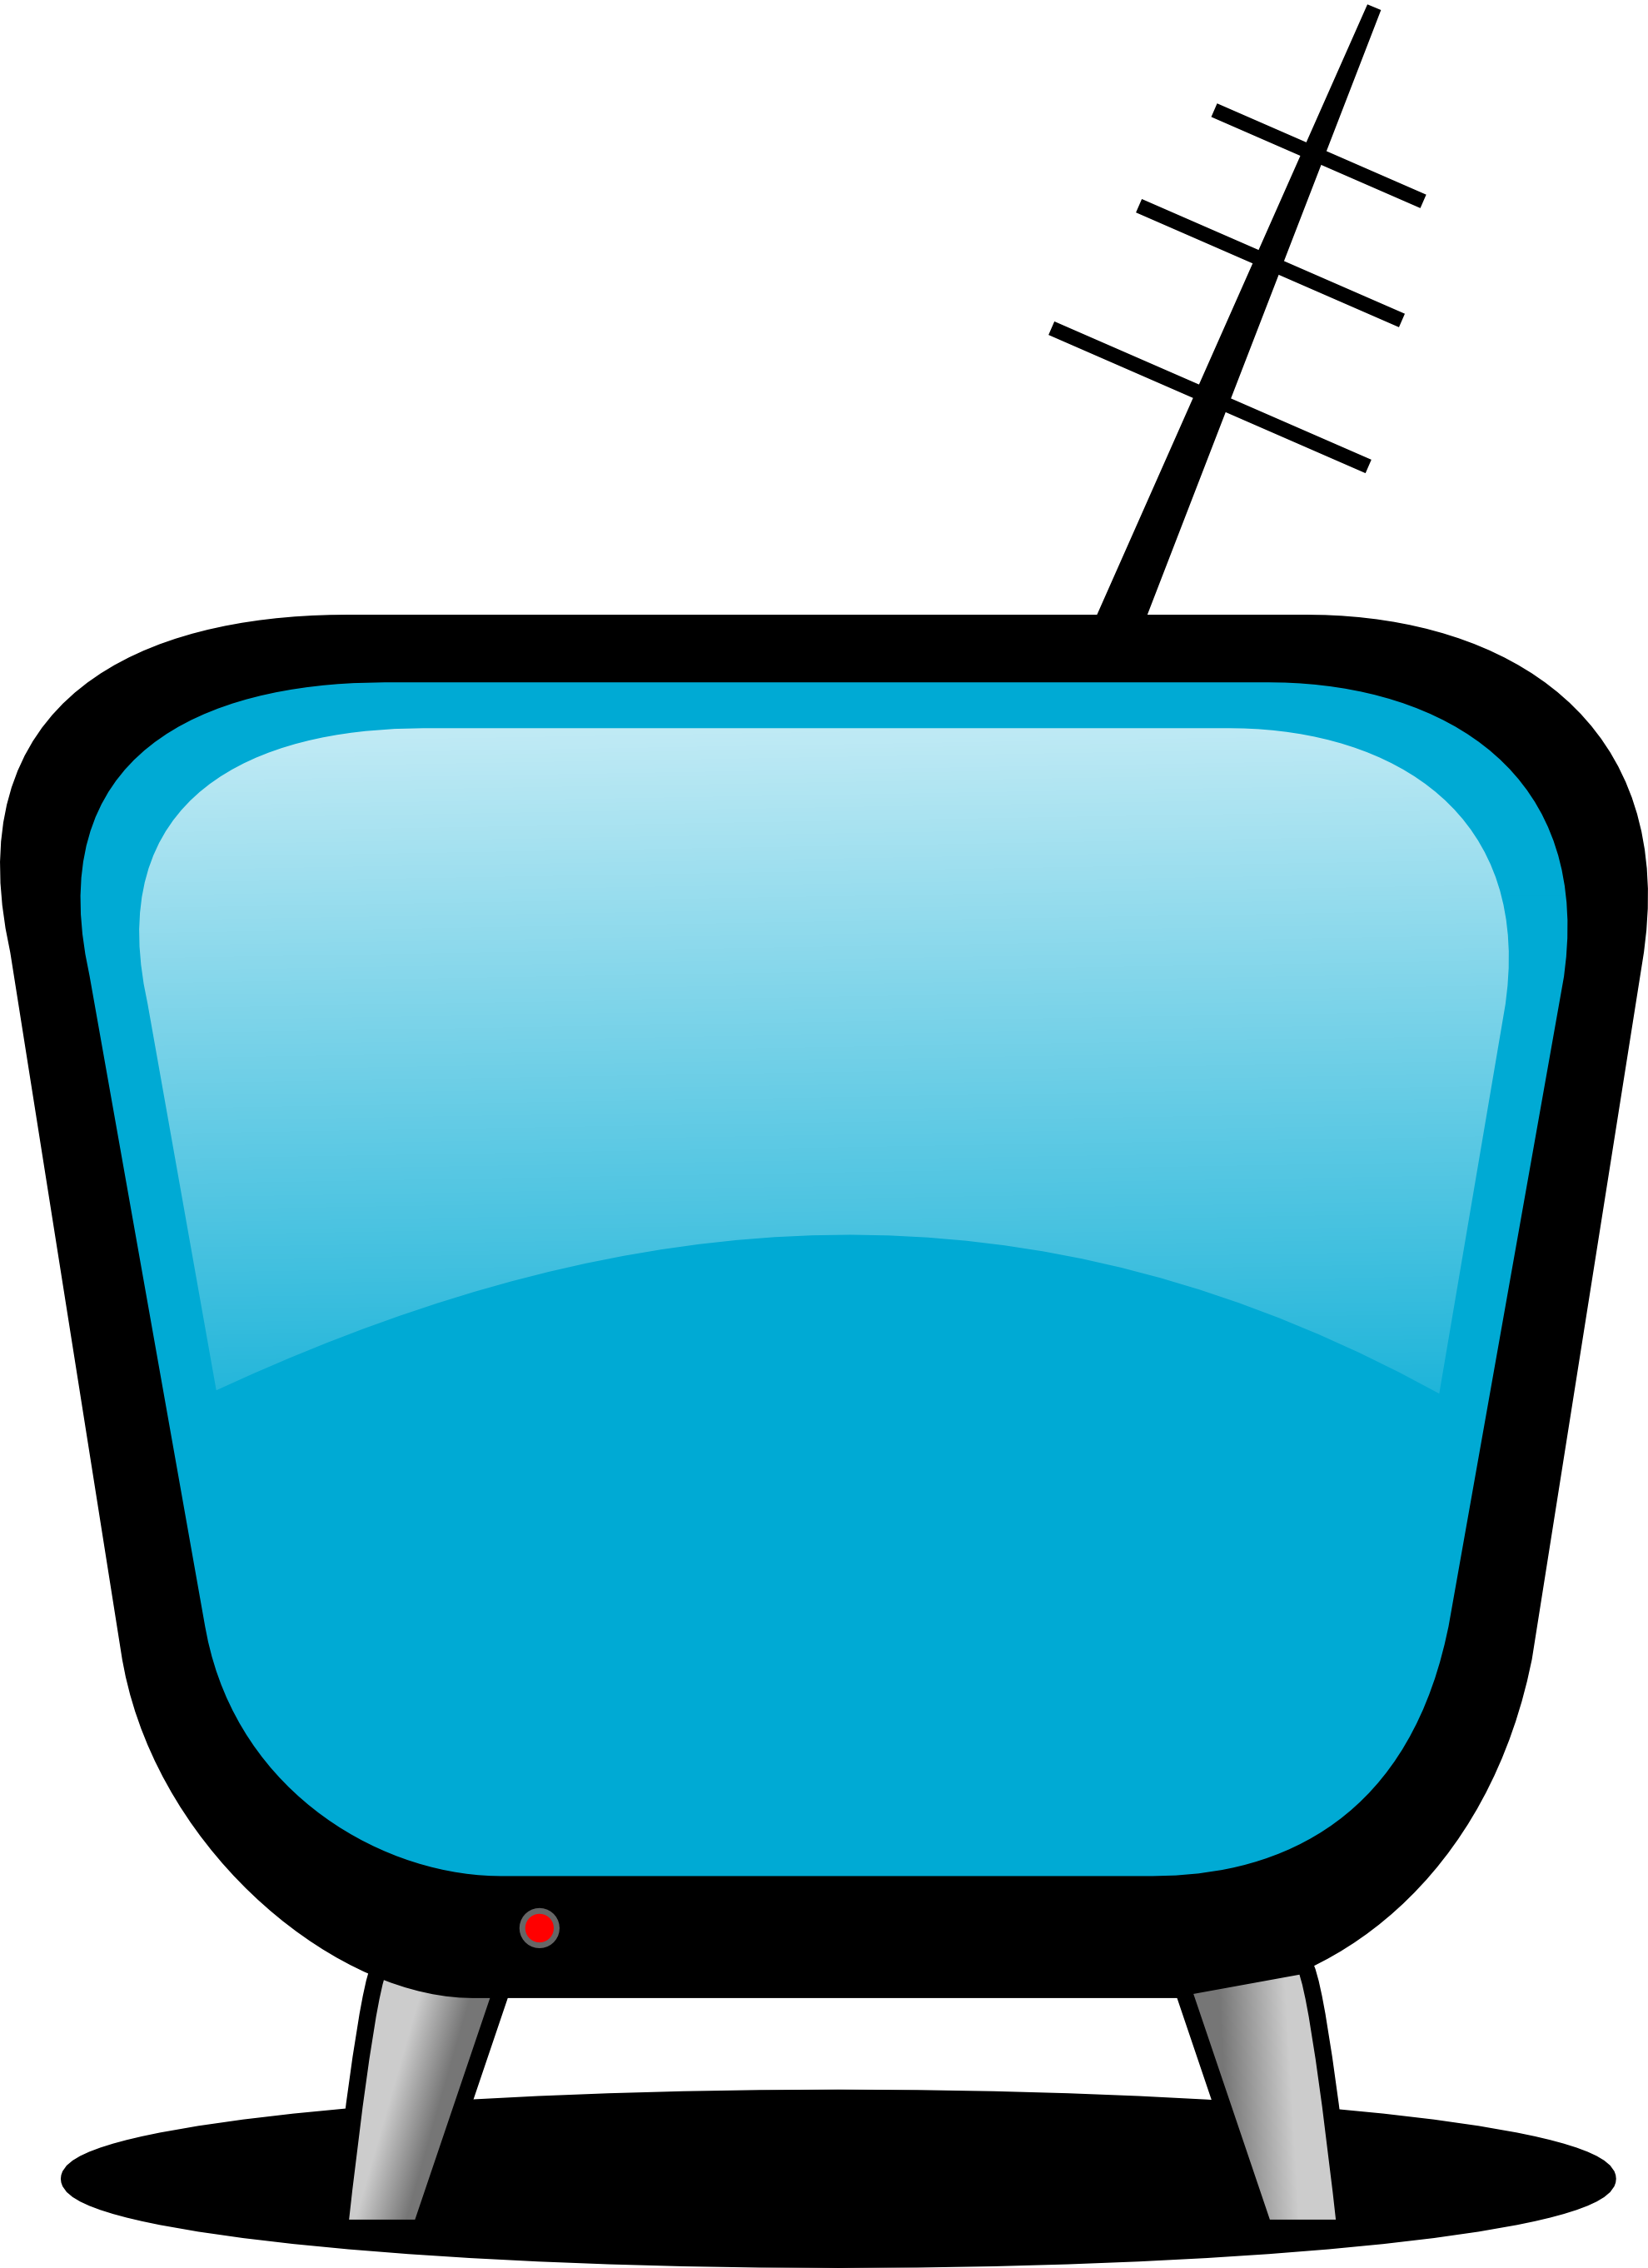 Tv clip art free. Electronics clipart electronic media